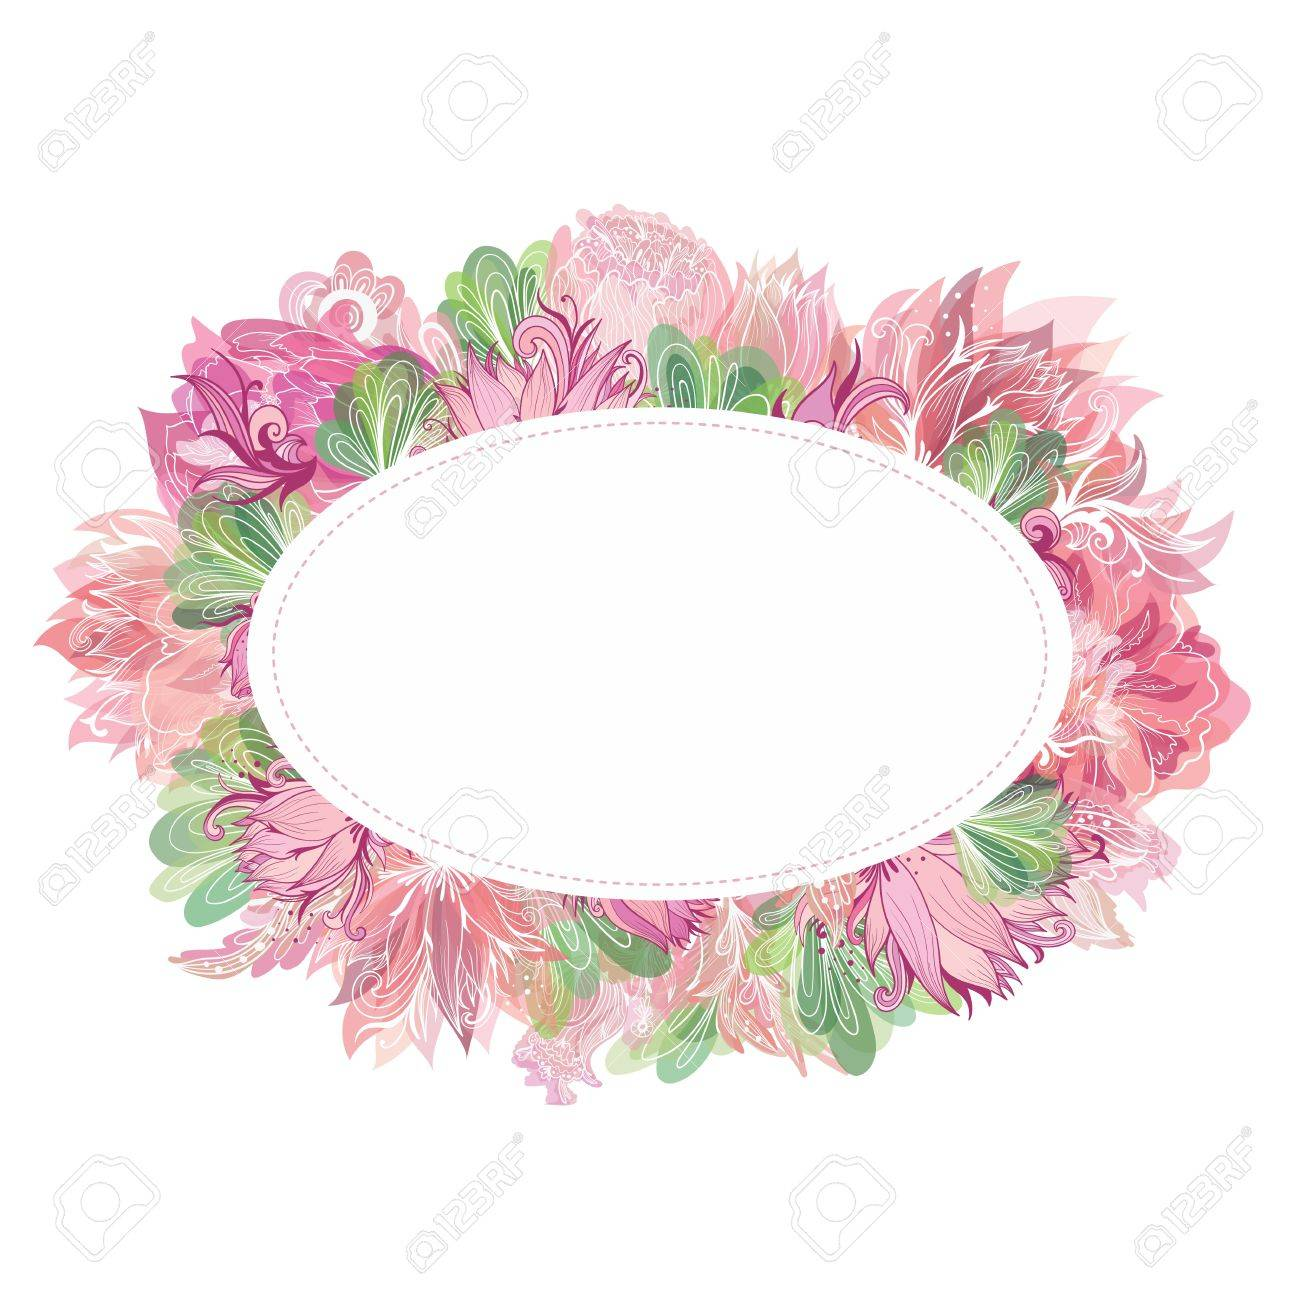 Beautiful Card Template With Shabby Chic Peony Lily And Lotus Flowers Watercolor Transparent Effect